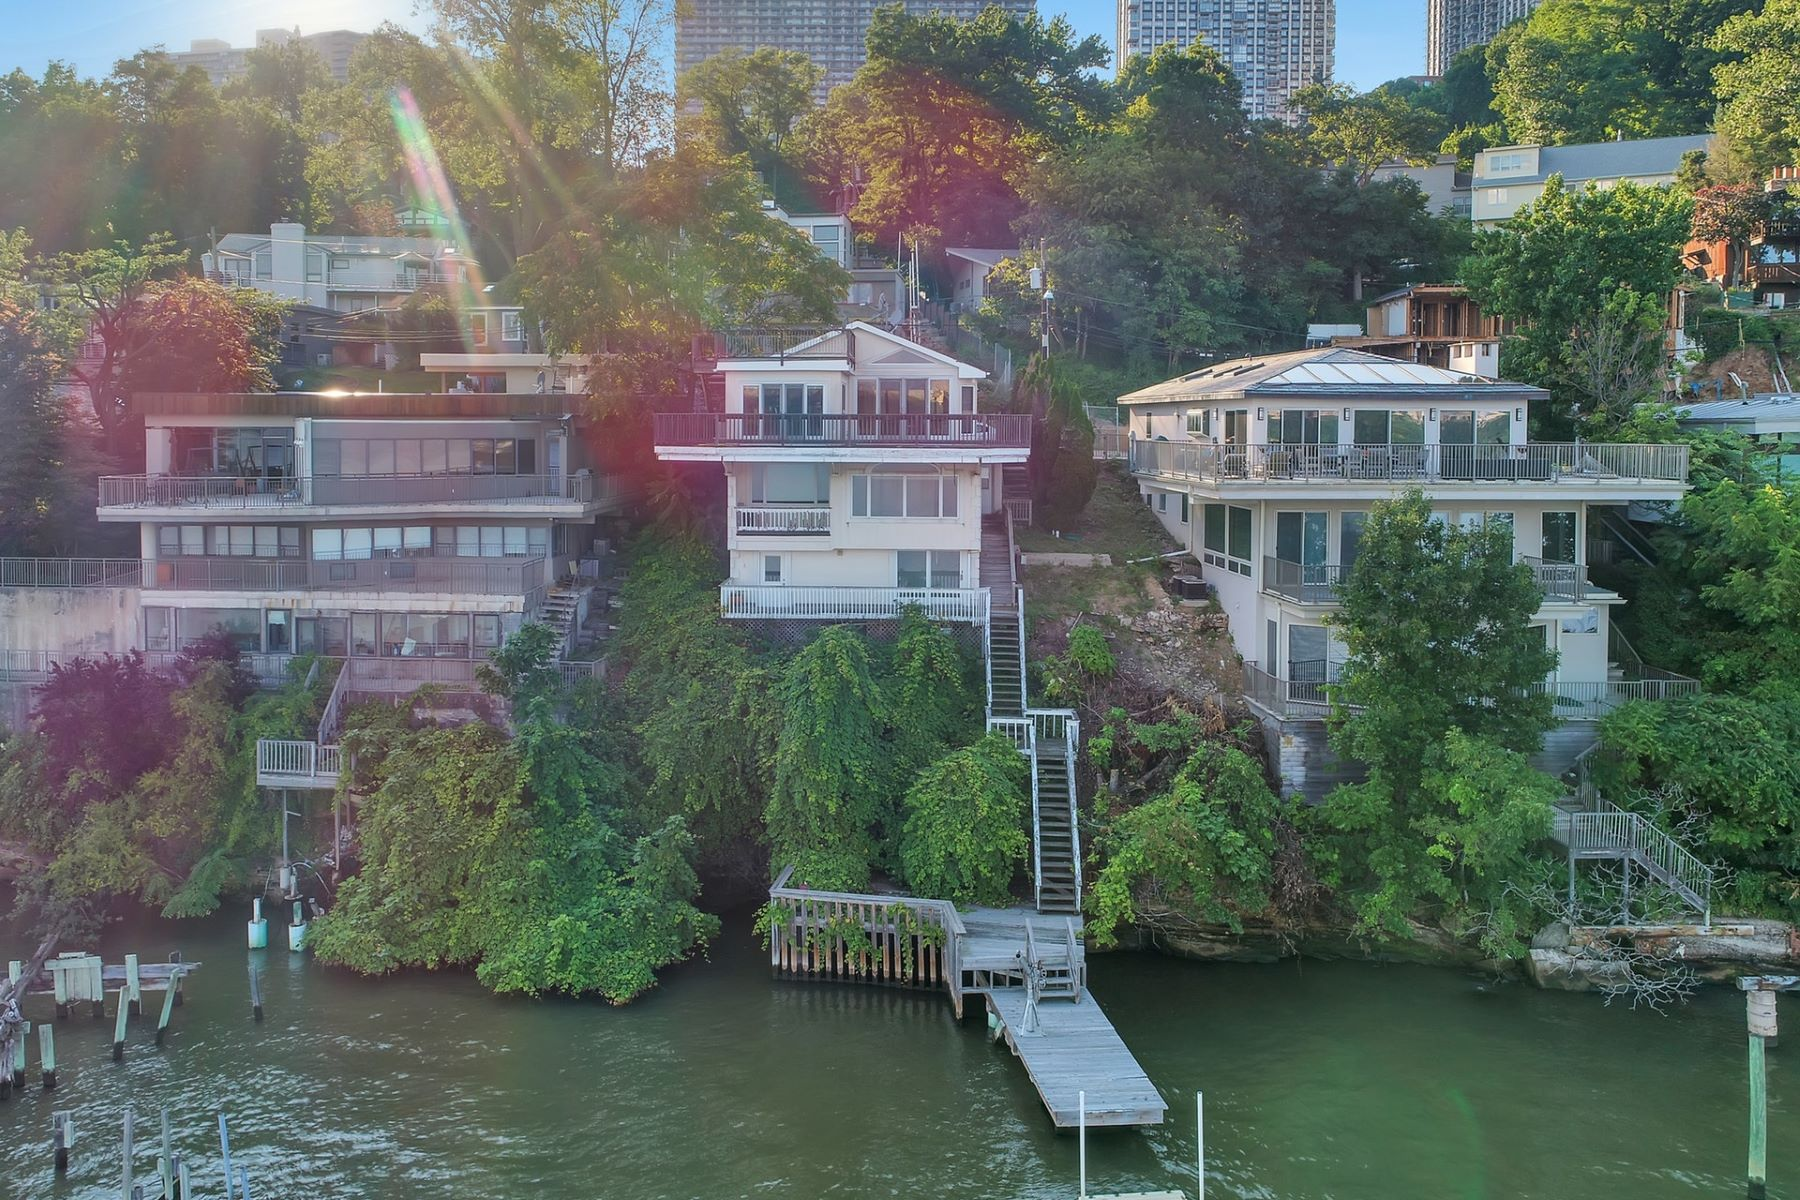 Casa Unifamiliar por un Venta en Exquisite Waterfront Home! 27 Shore Road Edgewater, Nueva Jersey 07020 Estados Unidos